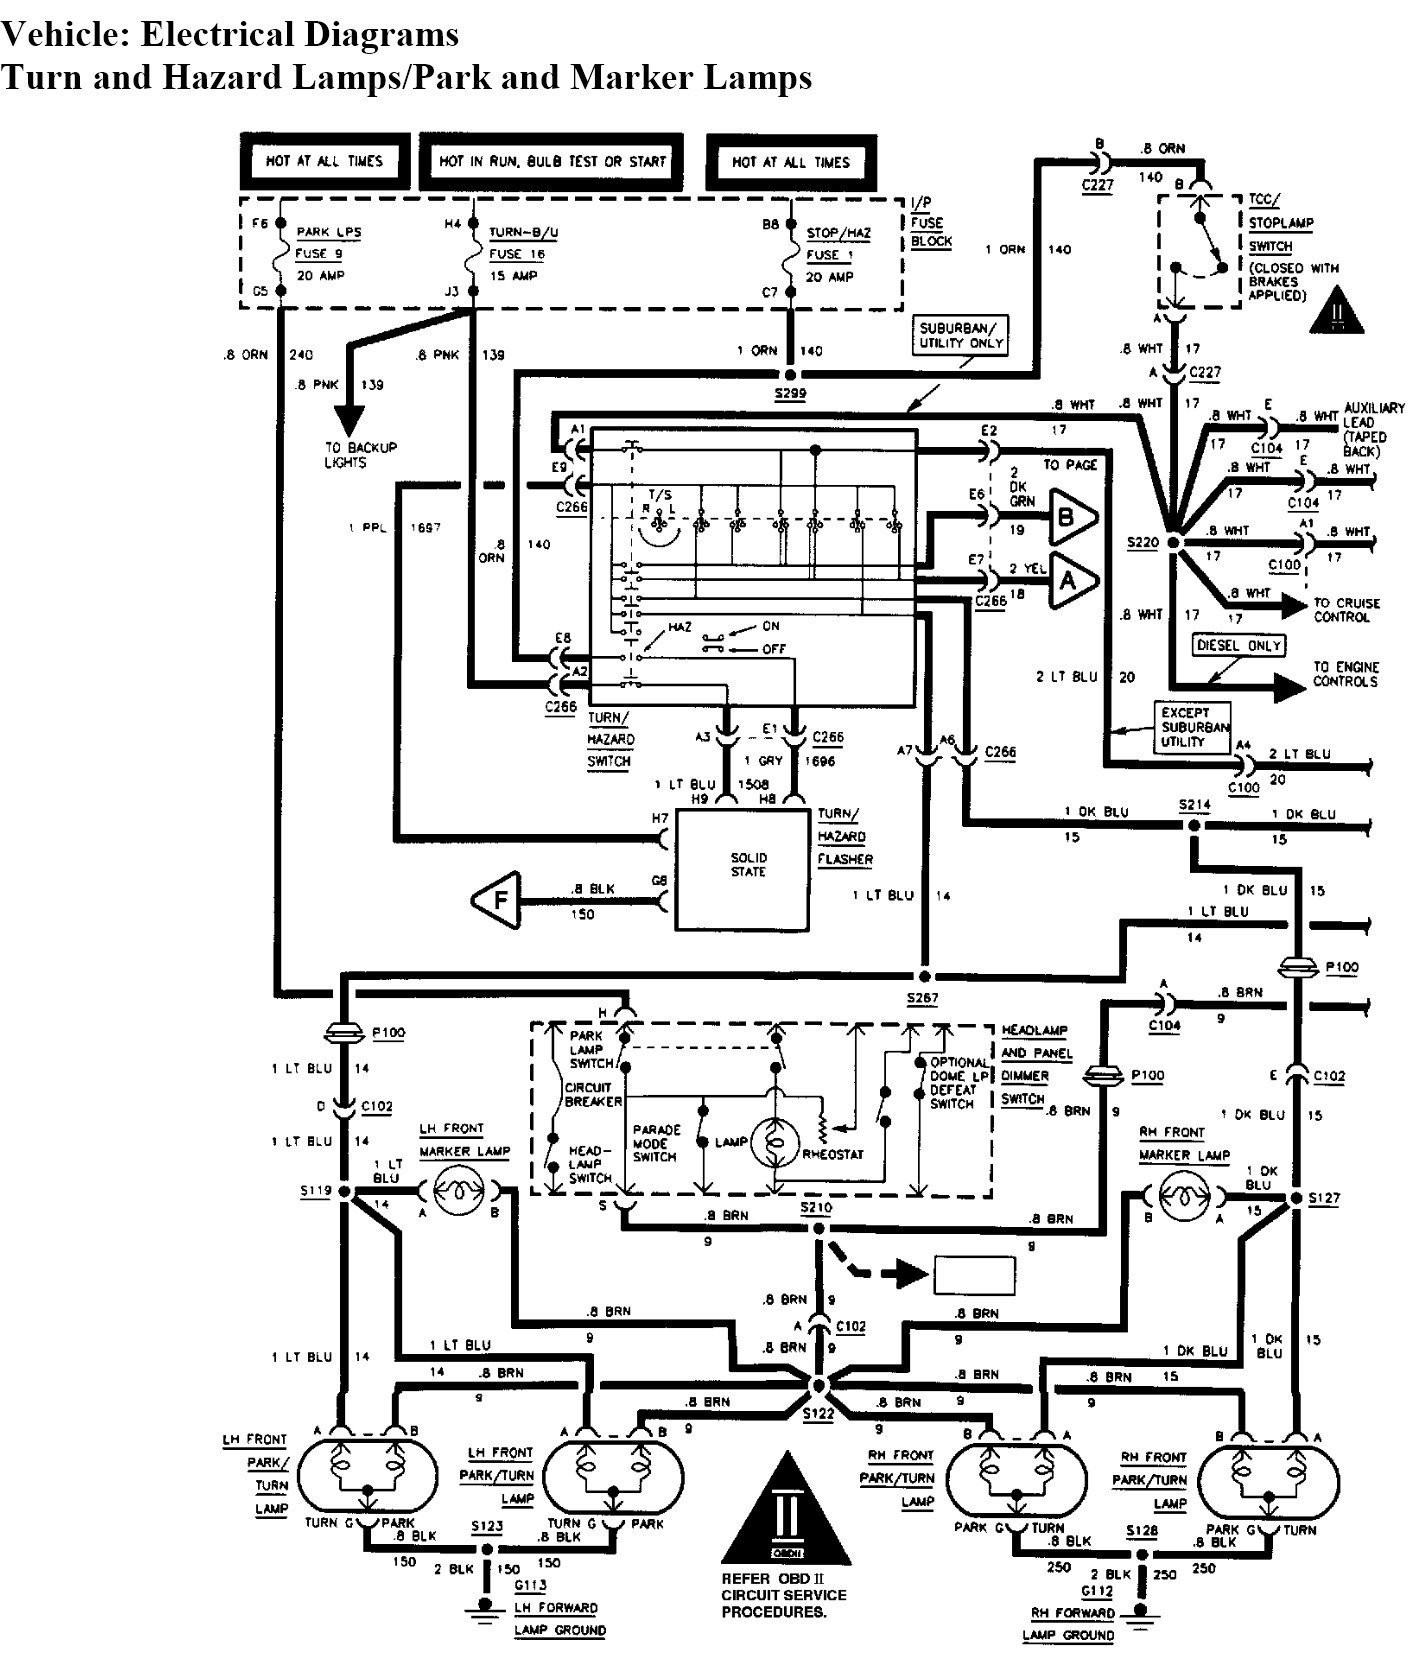 2001 Jeep Cherokee Sport Wiring Diagram from diagramweb.net